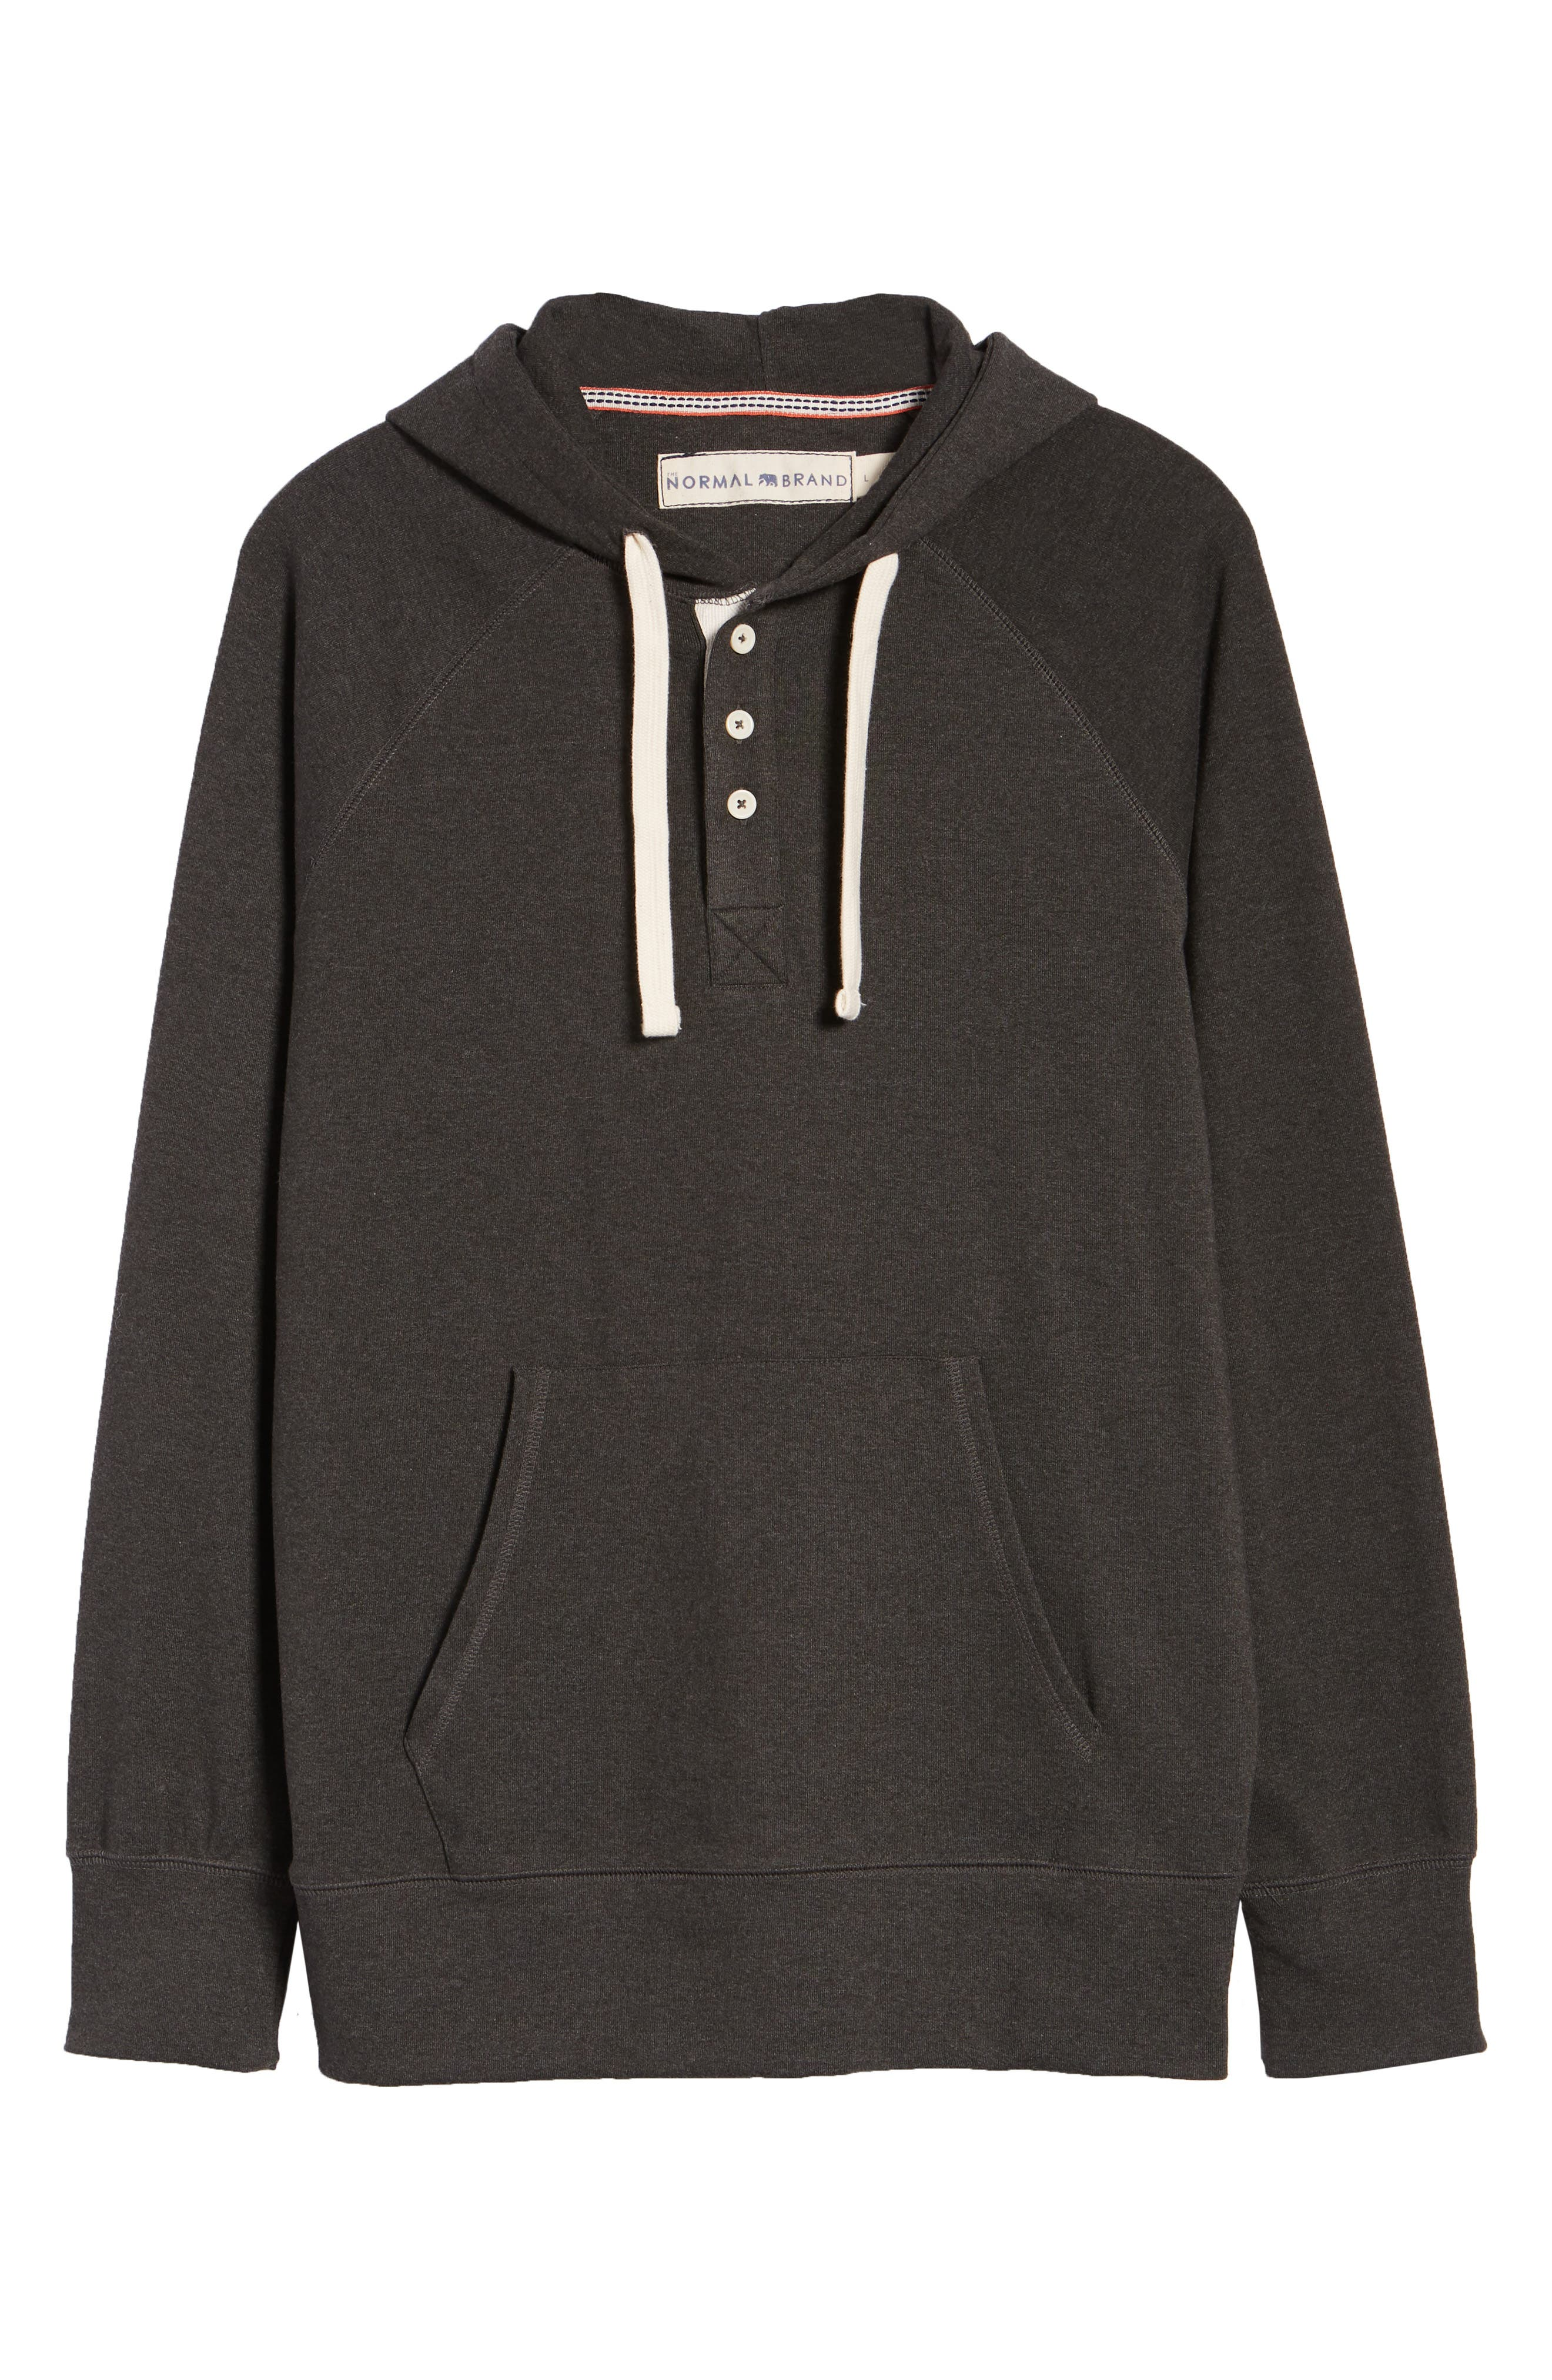 Puremeso Pullover Hoodie,                             Alternate thumbnail 6, color,                             CHARCOAL